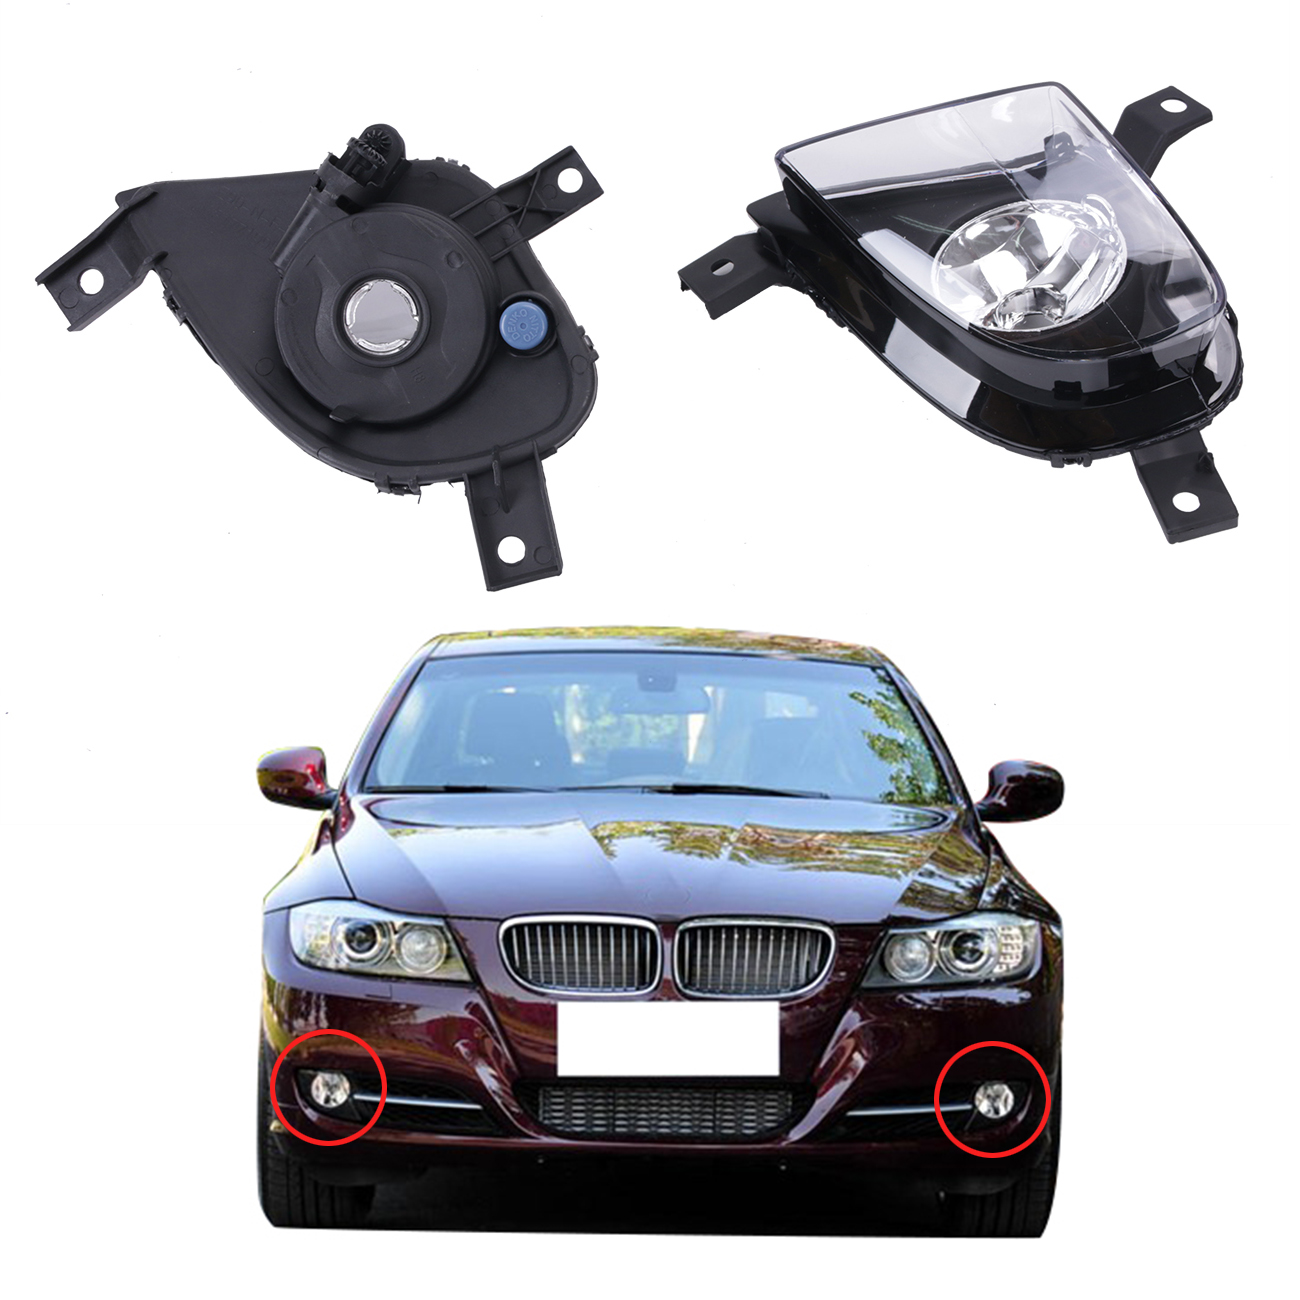 Fog Lights Lamps Foglamps Cover For BMW 3 Series 328i 323i 335d 335i E90 E91 2009 2010 2011 OEM 63177199893 63177199894 #W085 for bmw 3 series e36 318 328 323 325 front coilover strut camber plate top mount green drift front domlager top upper mount